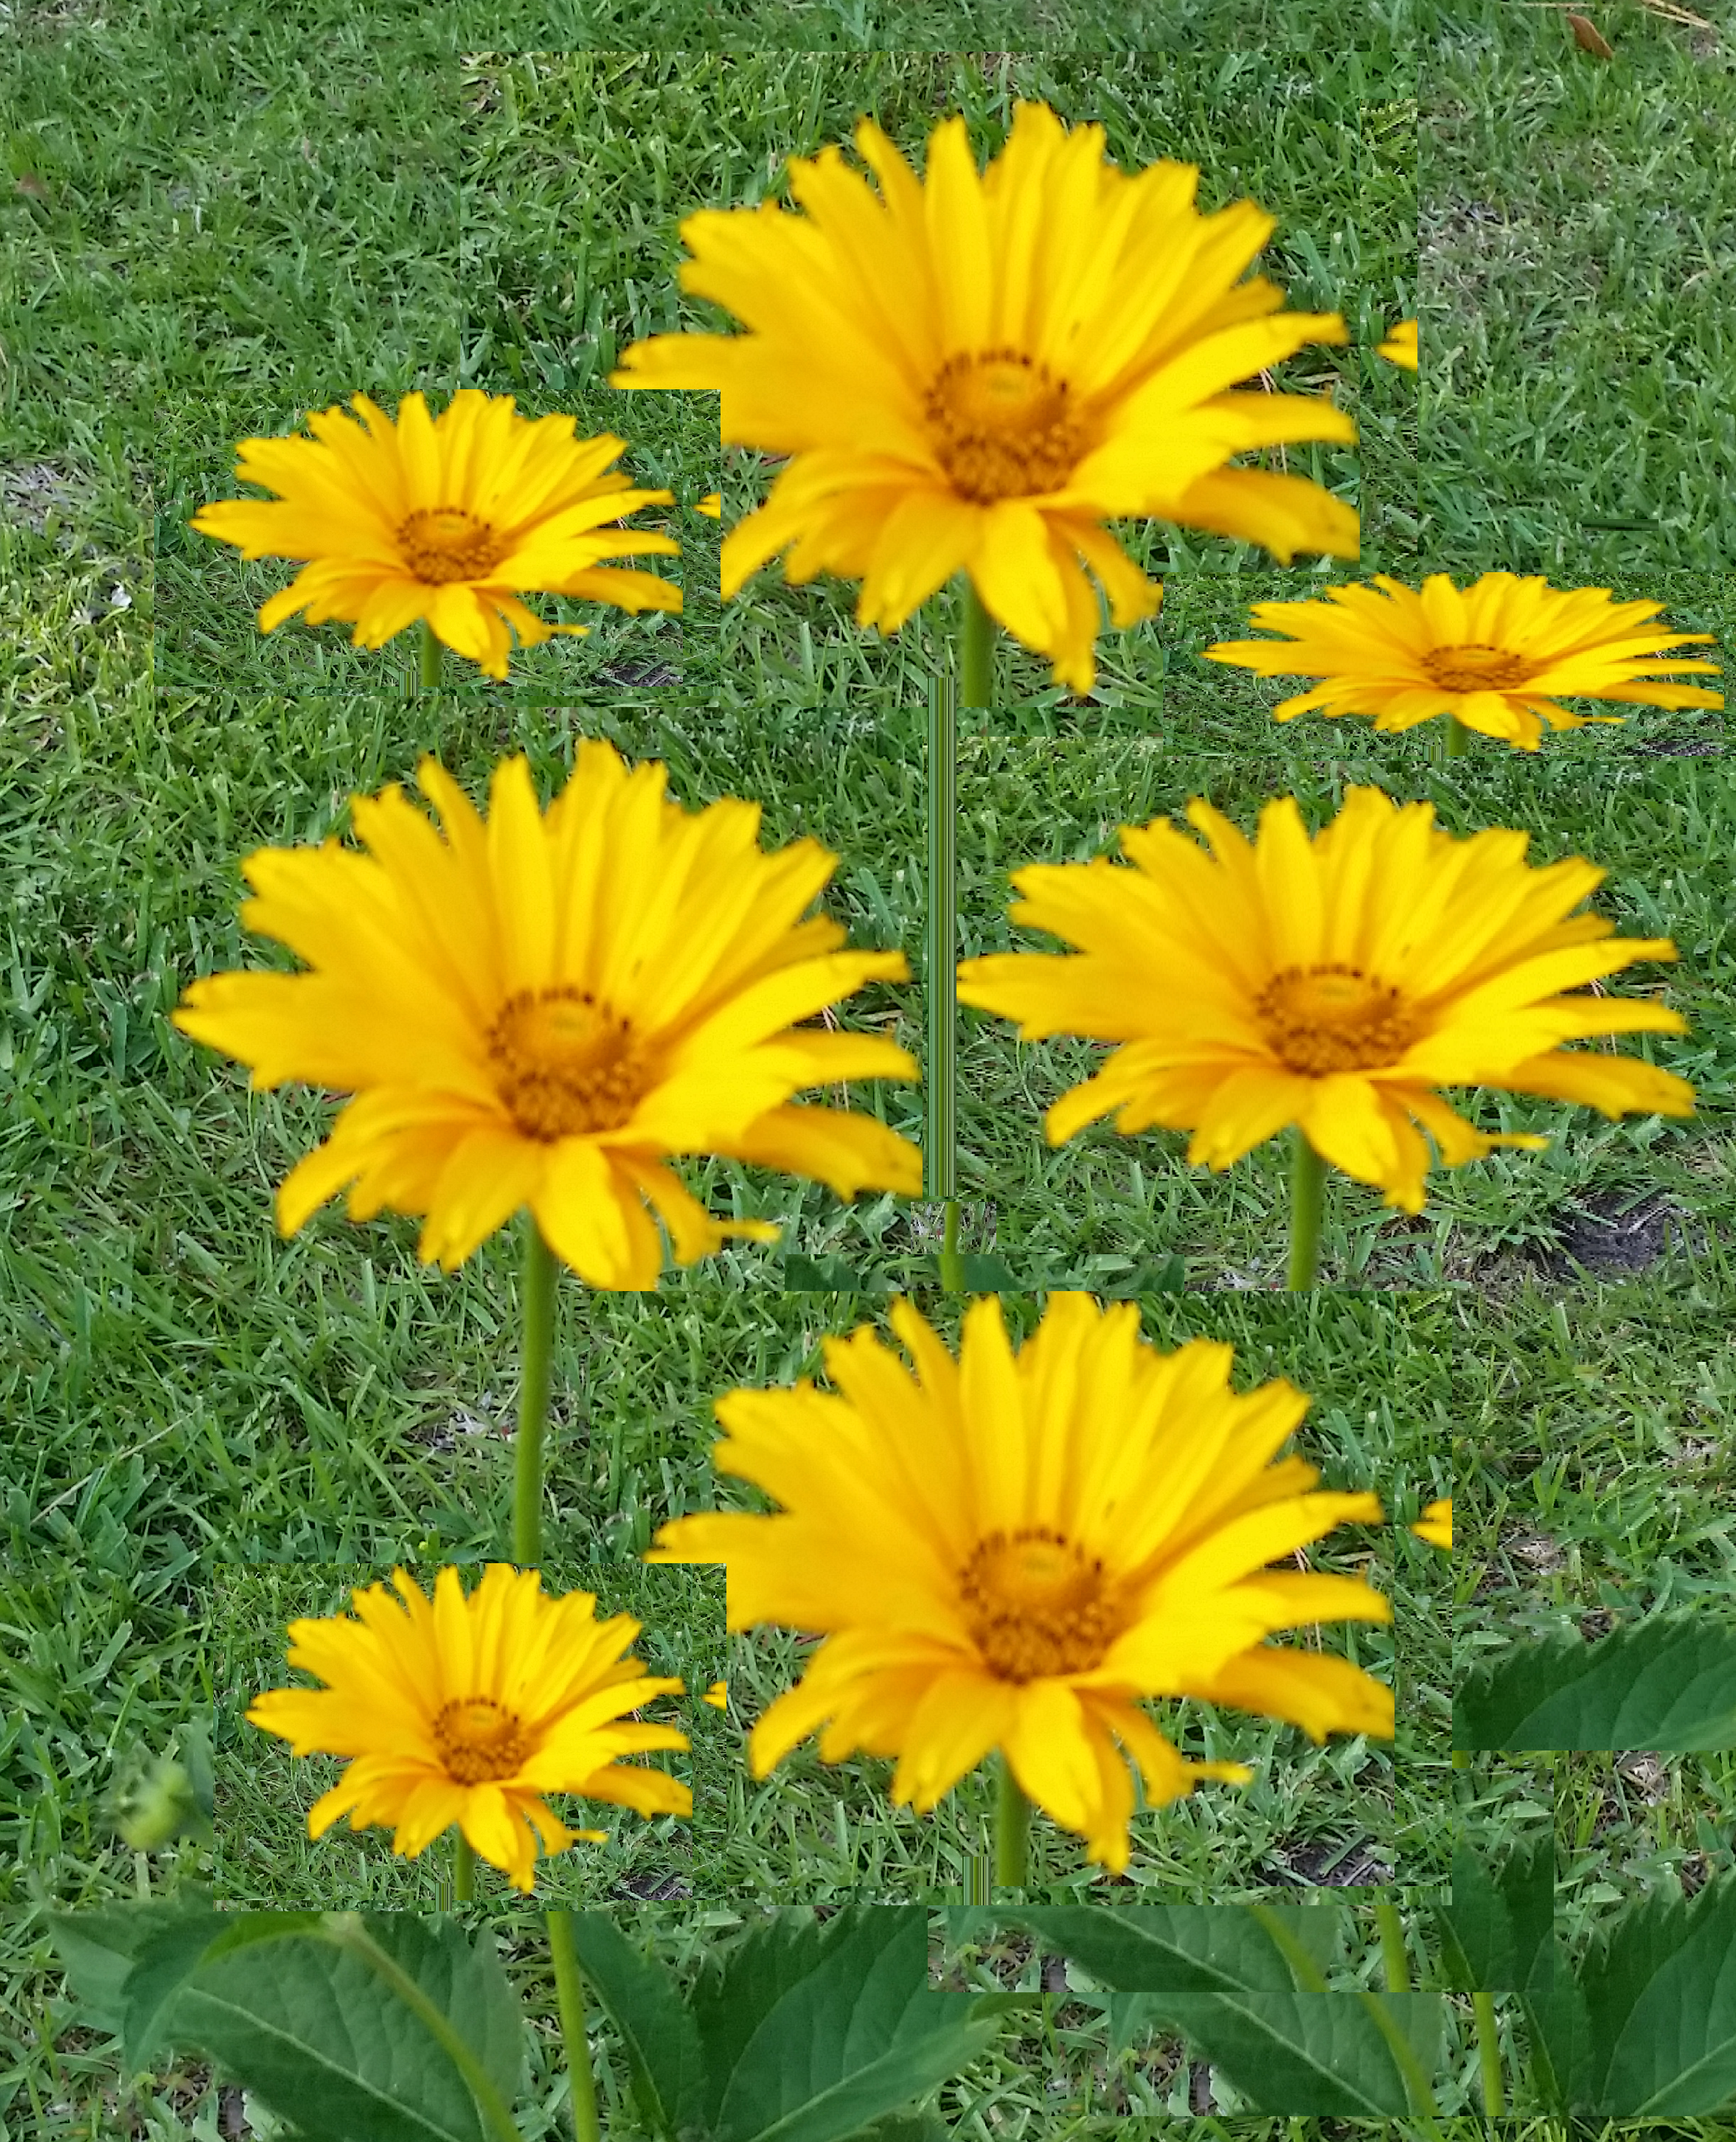 yellowdaisies.png